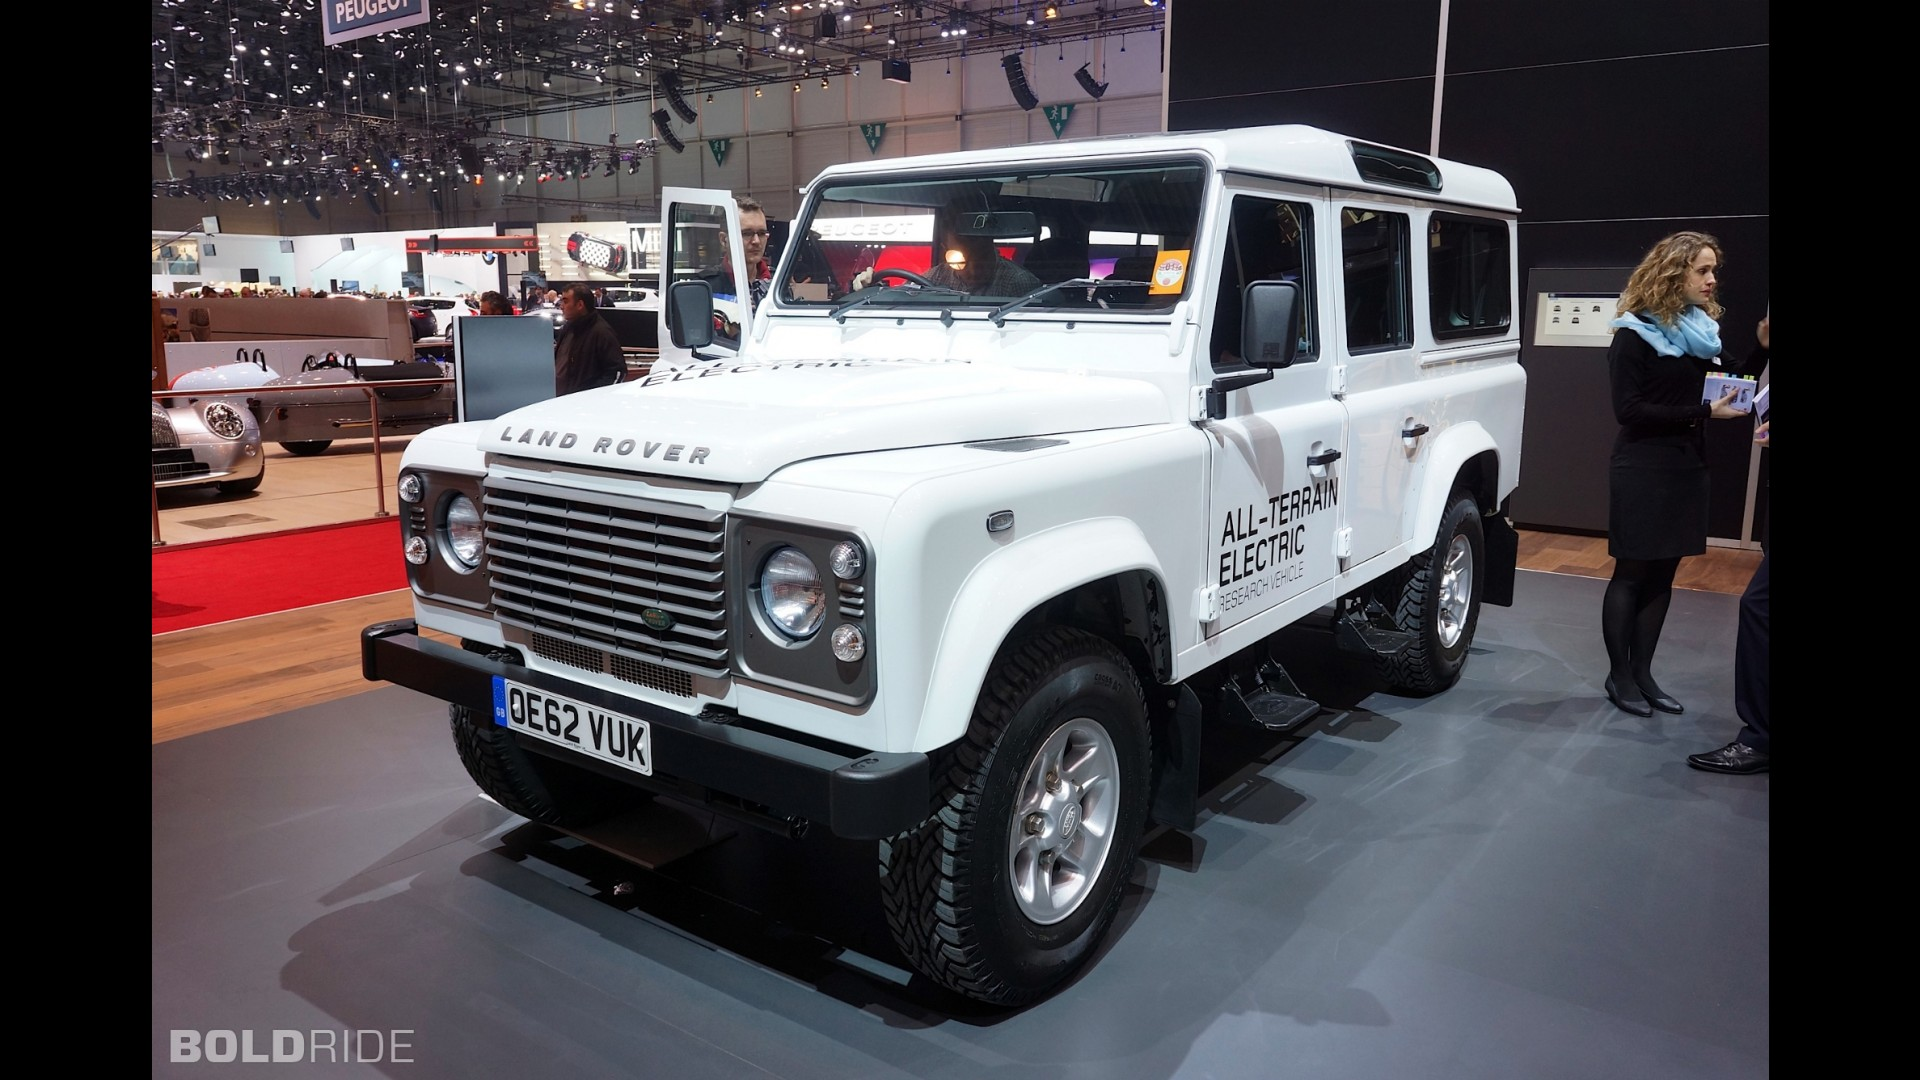 https://icdn-4.motor1.com/images/mgl/A0NjL/s1/land-rover-defender-electric-research-vehicle.jpg